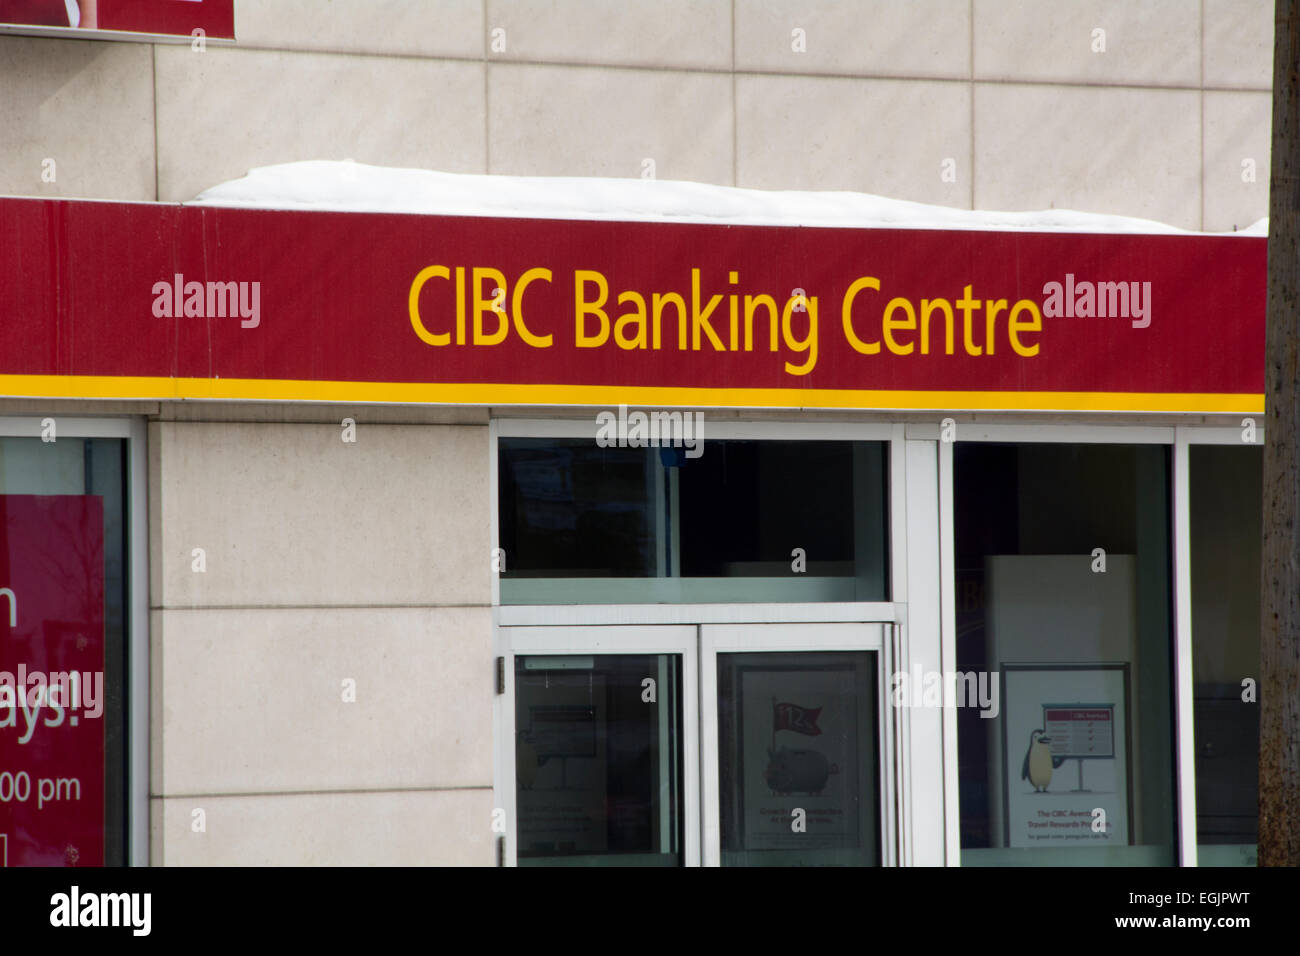 CIBC banking center sign on a retail branch in Toronto Canada - Stock Image